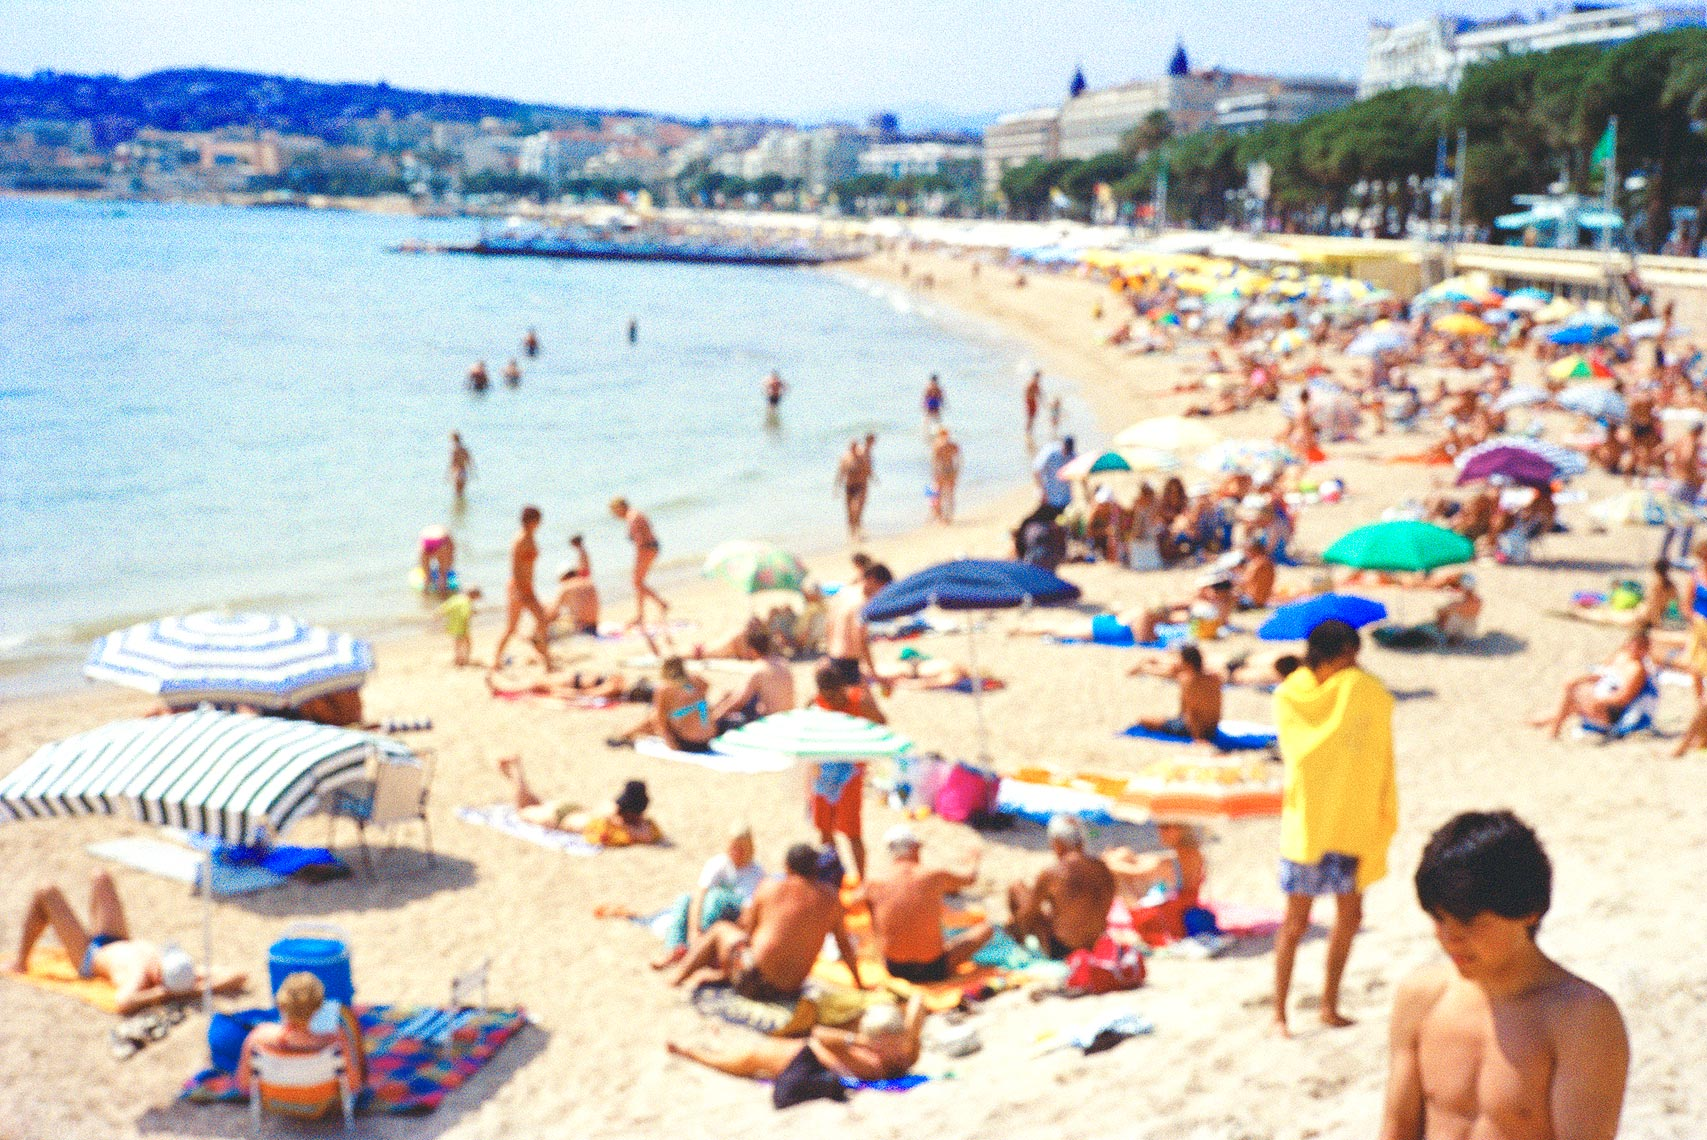 Plage_Cannes_small_print.jpg